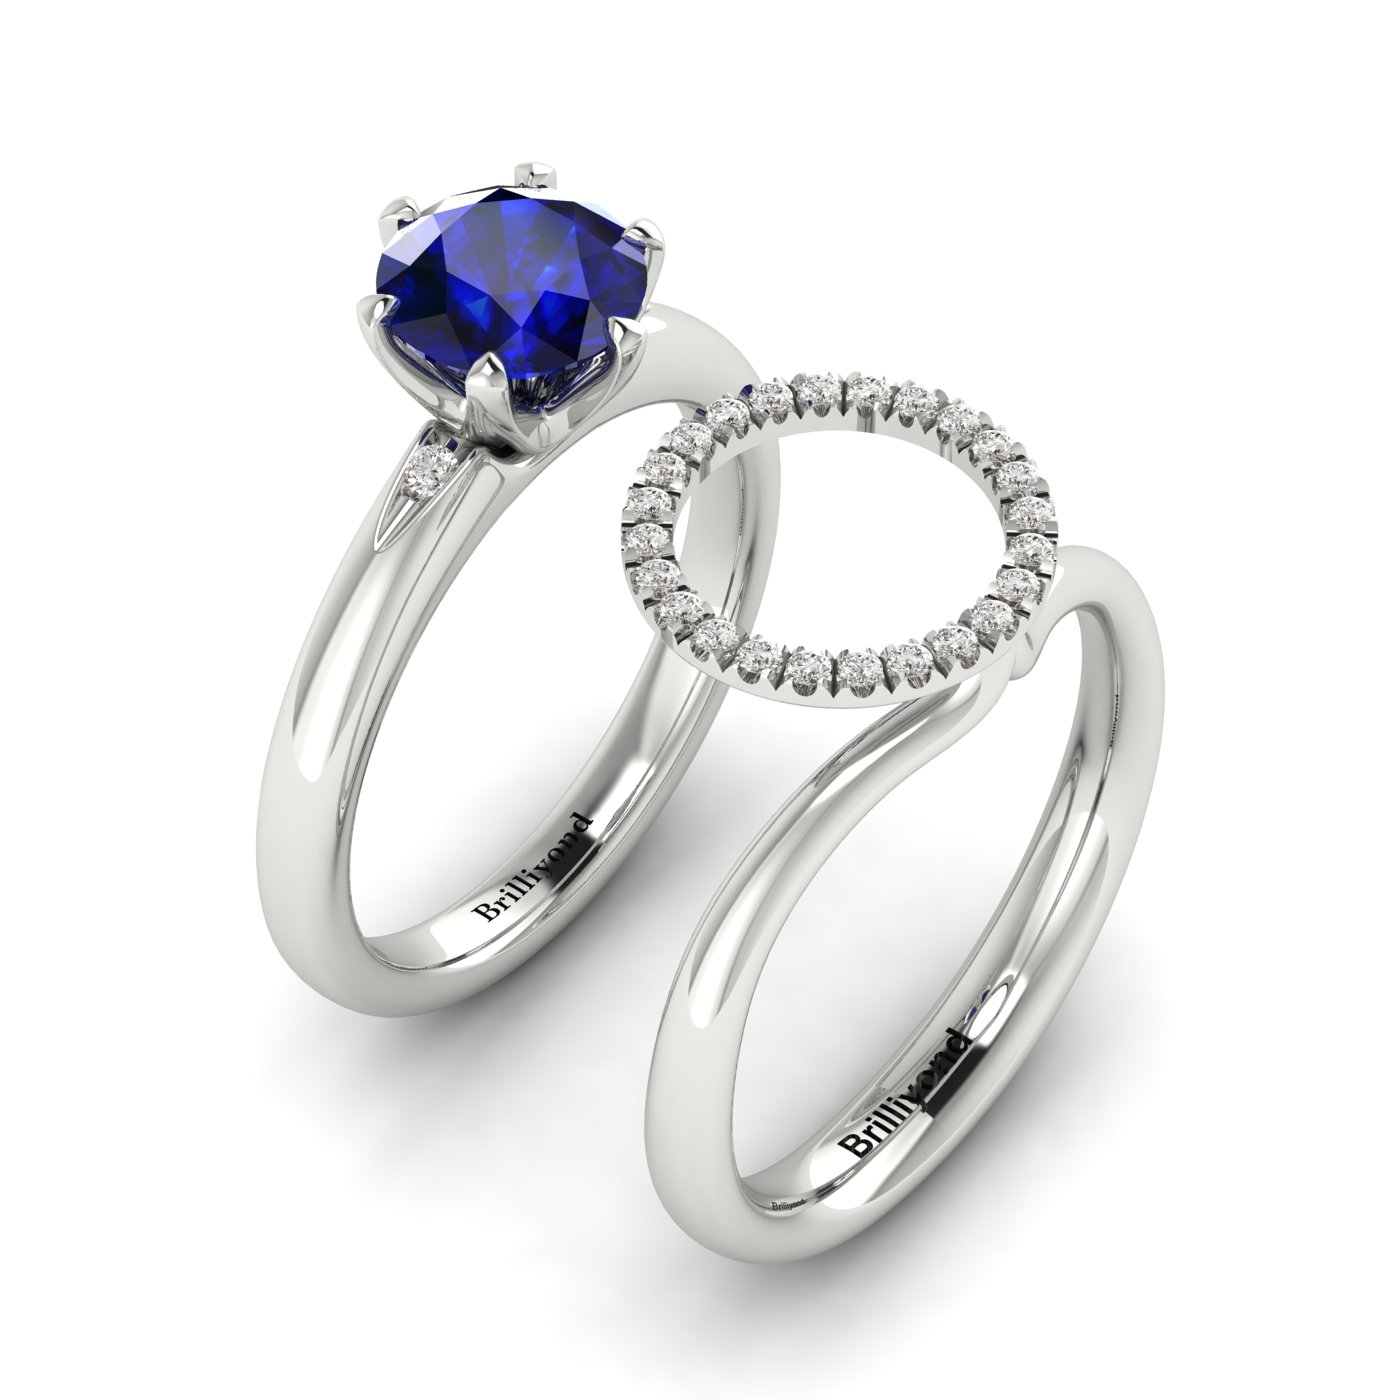 Cubic Zirconia Halo Ring Guard Enhancer Byond_image3